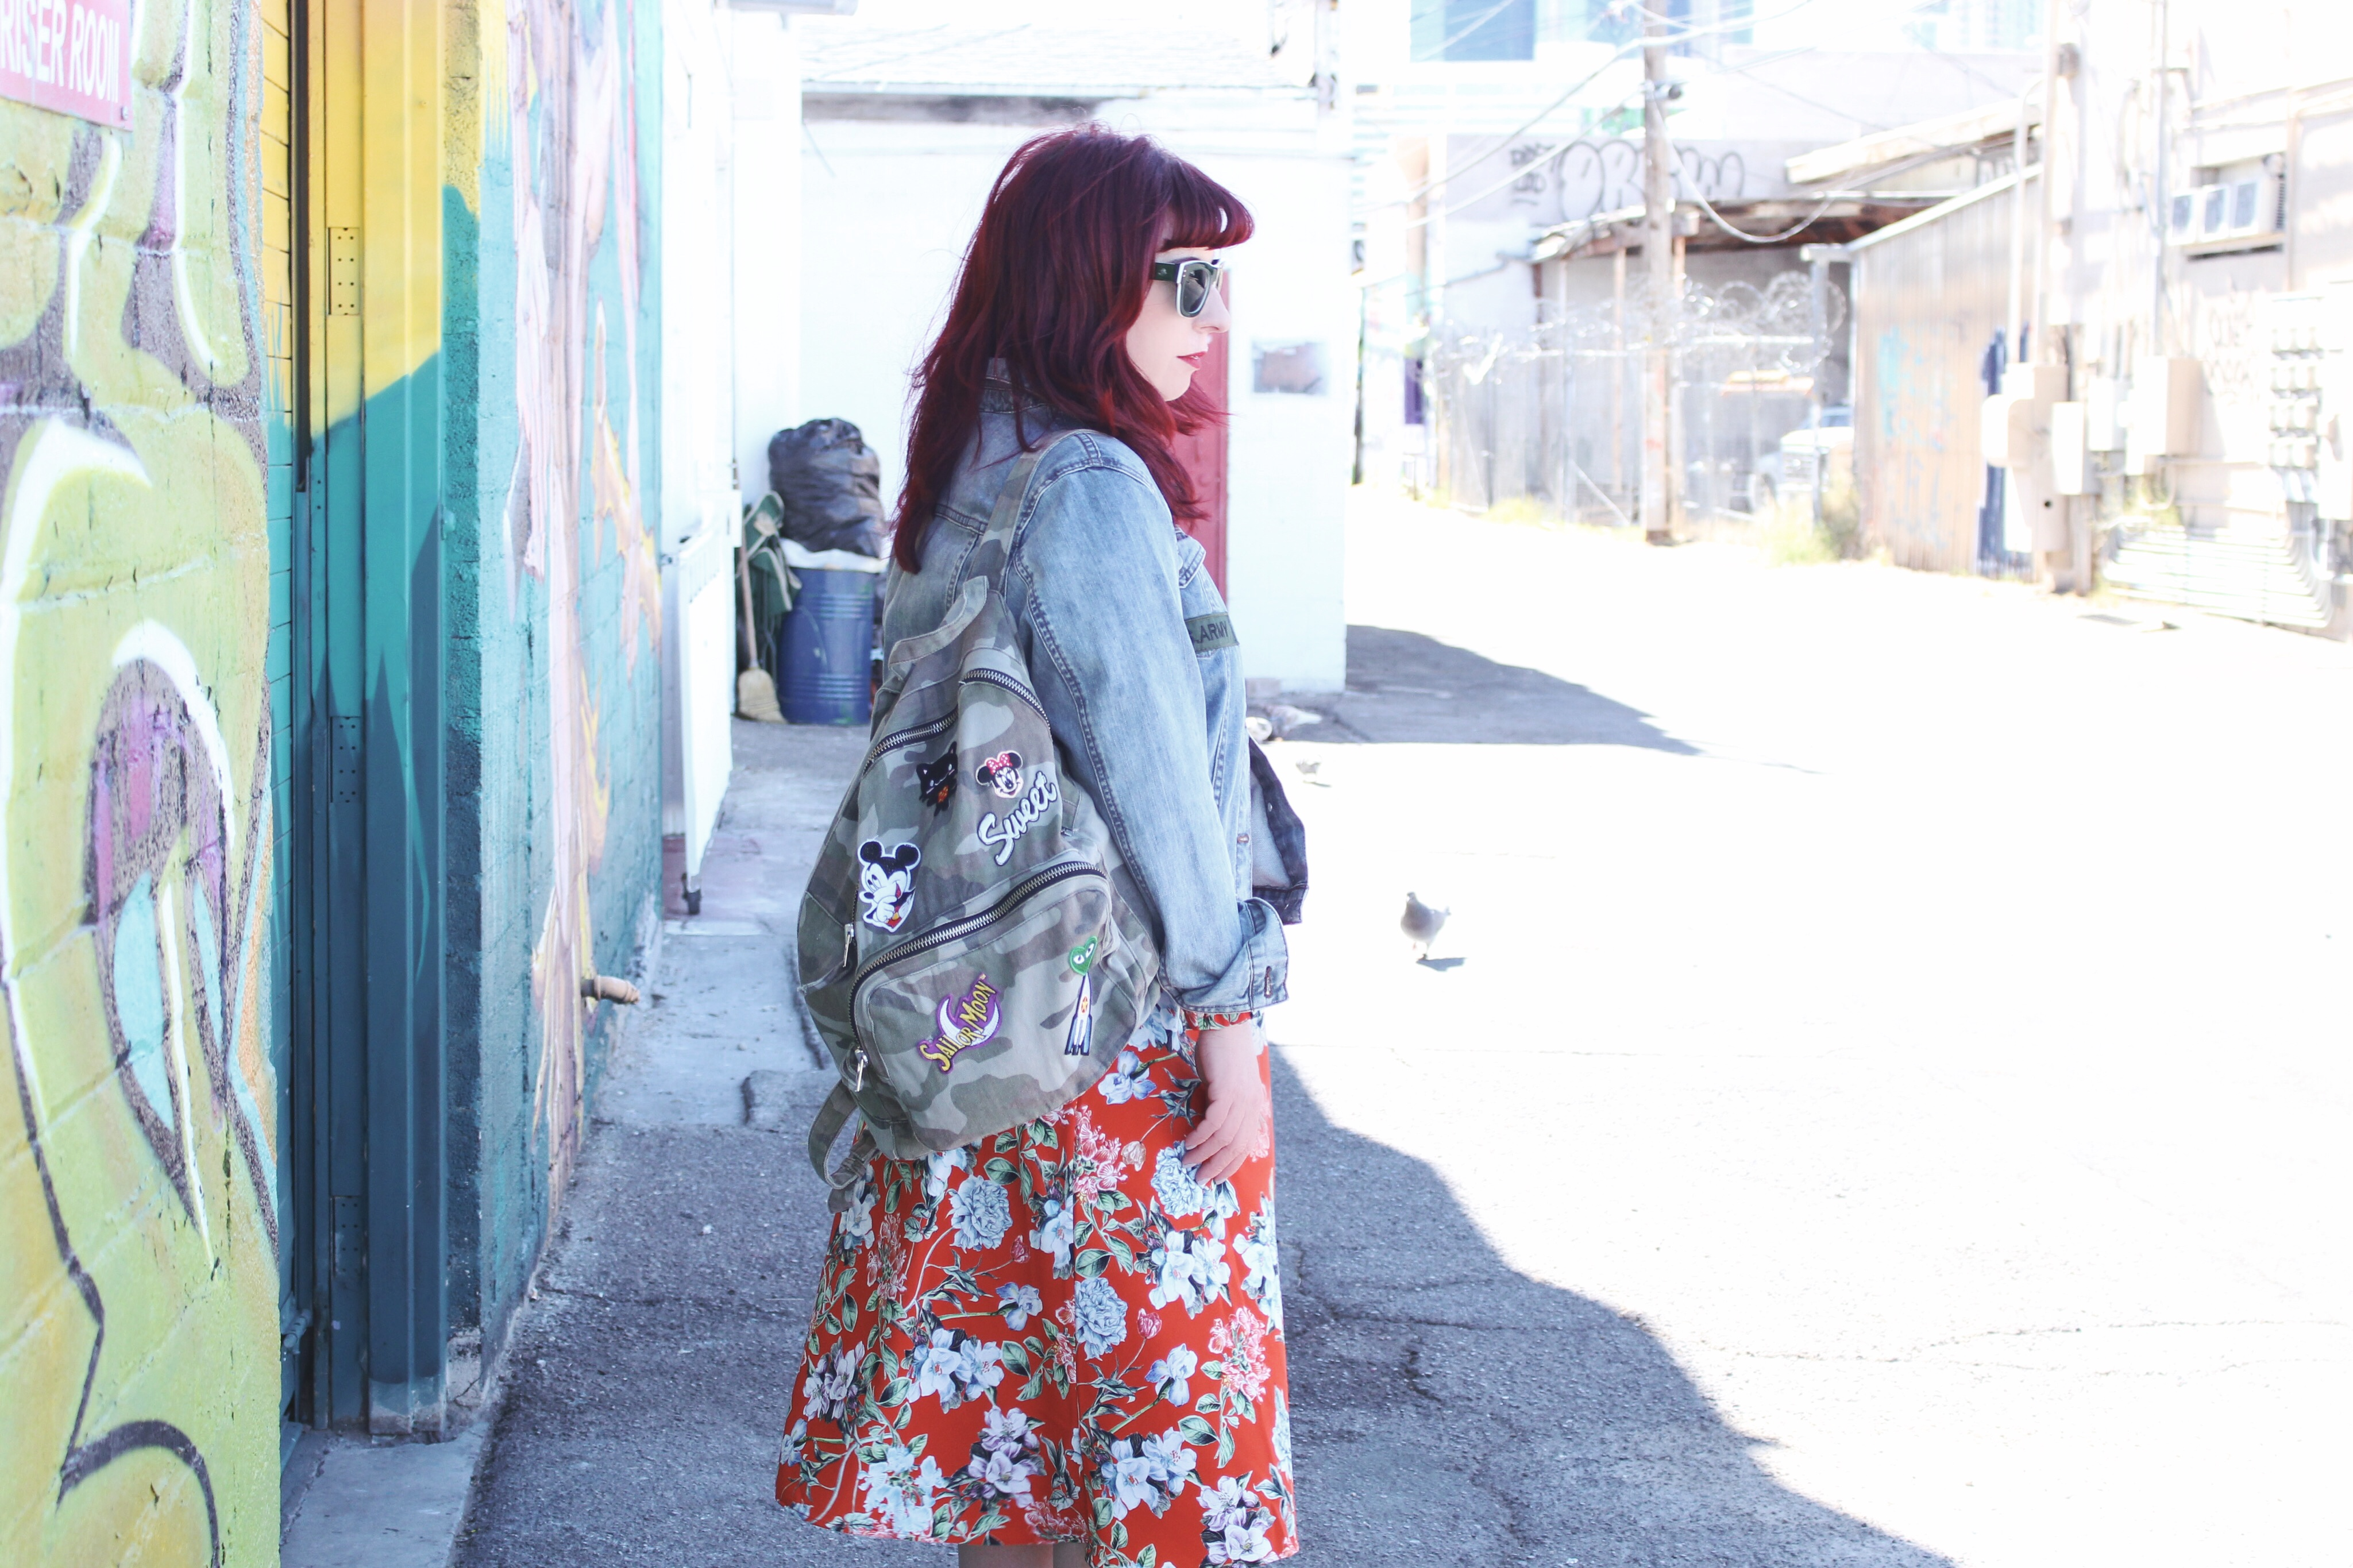 How to add street style edge to your look with patches